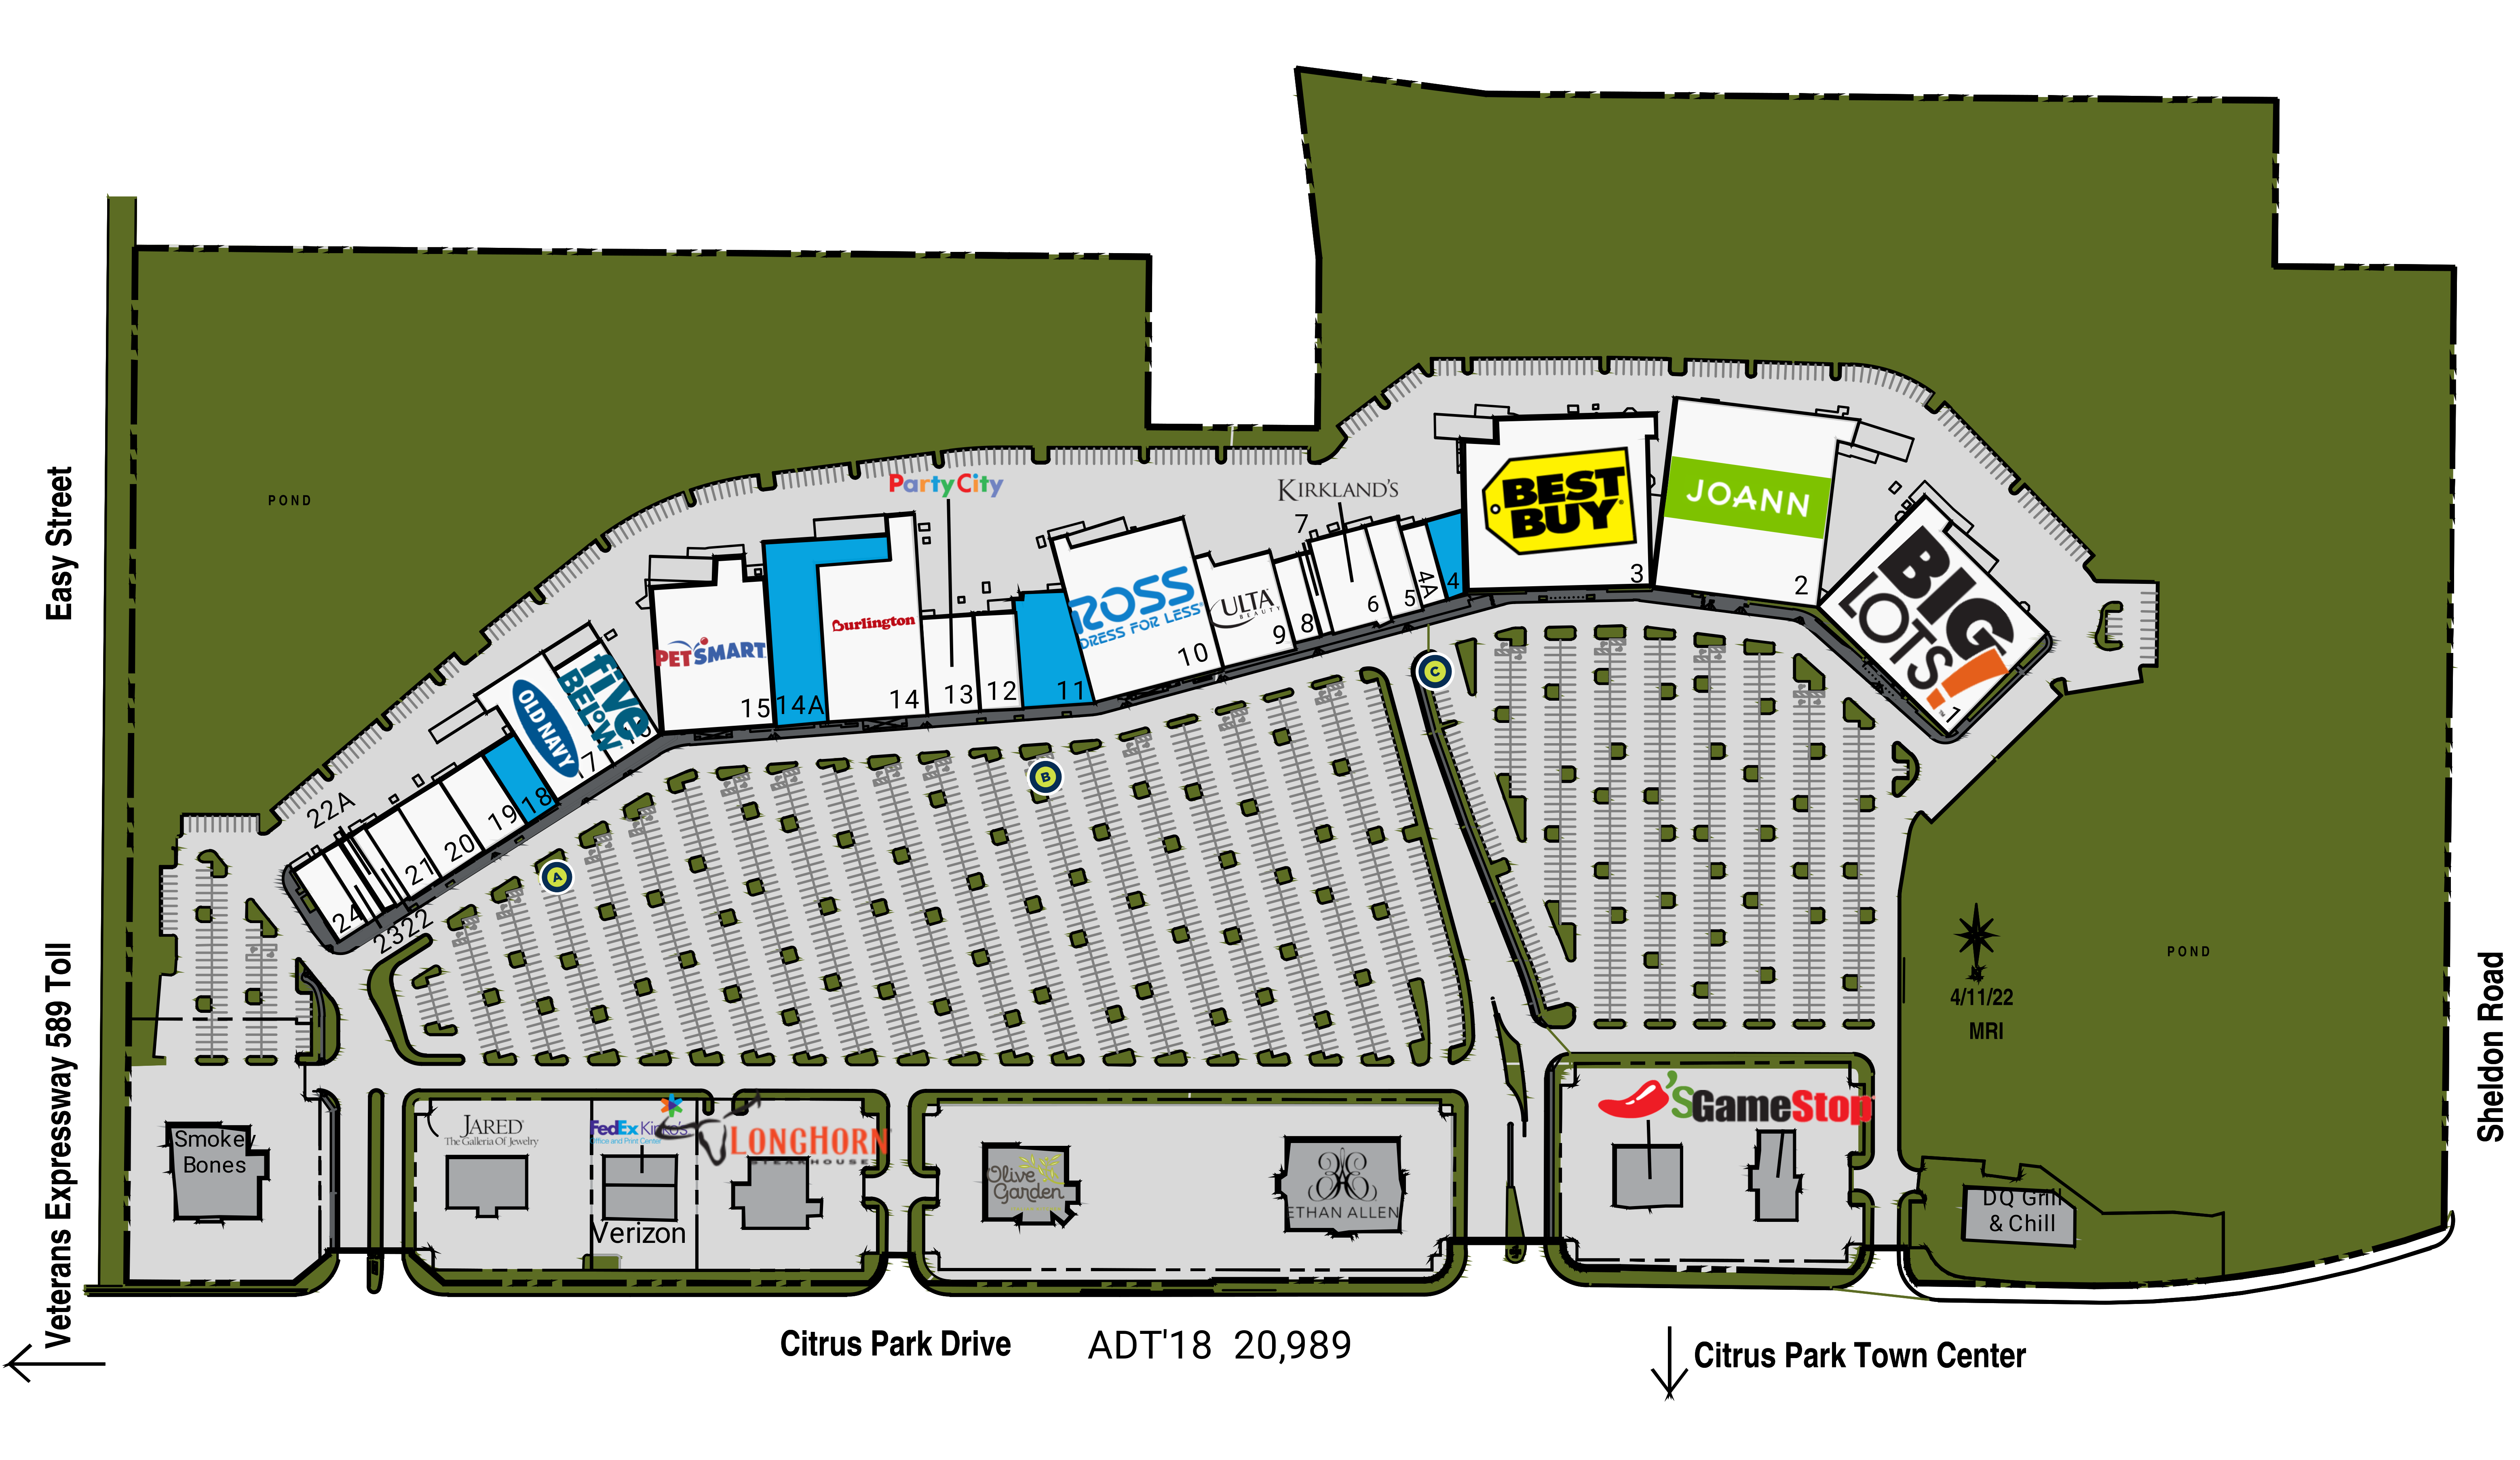 Citrus Park Mall Map Tampa FL: The Plaza at Citrus Park   Retail Space   Kimco Realty